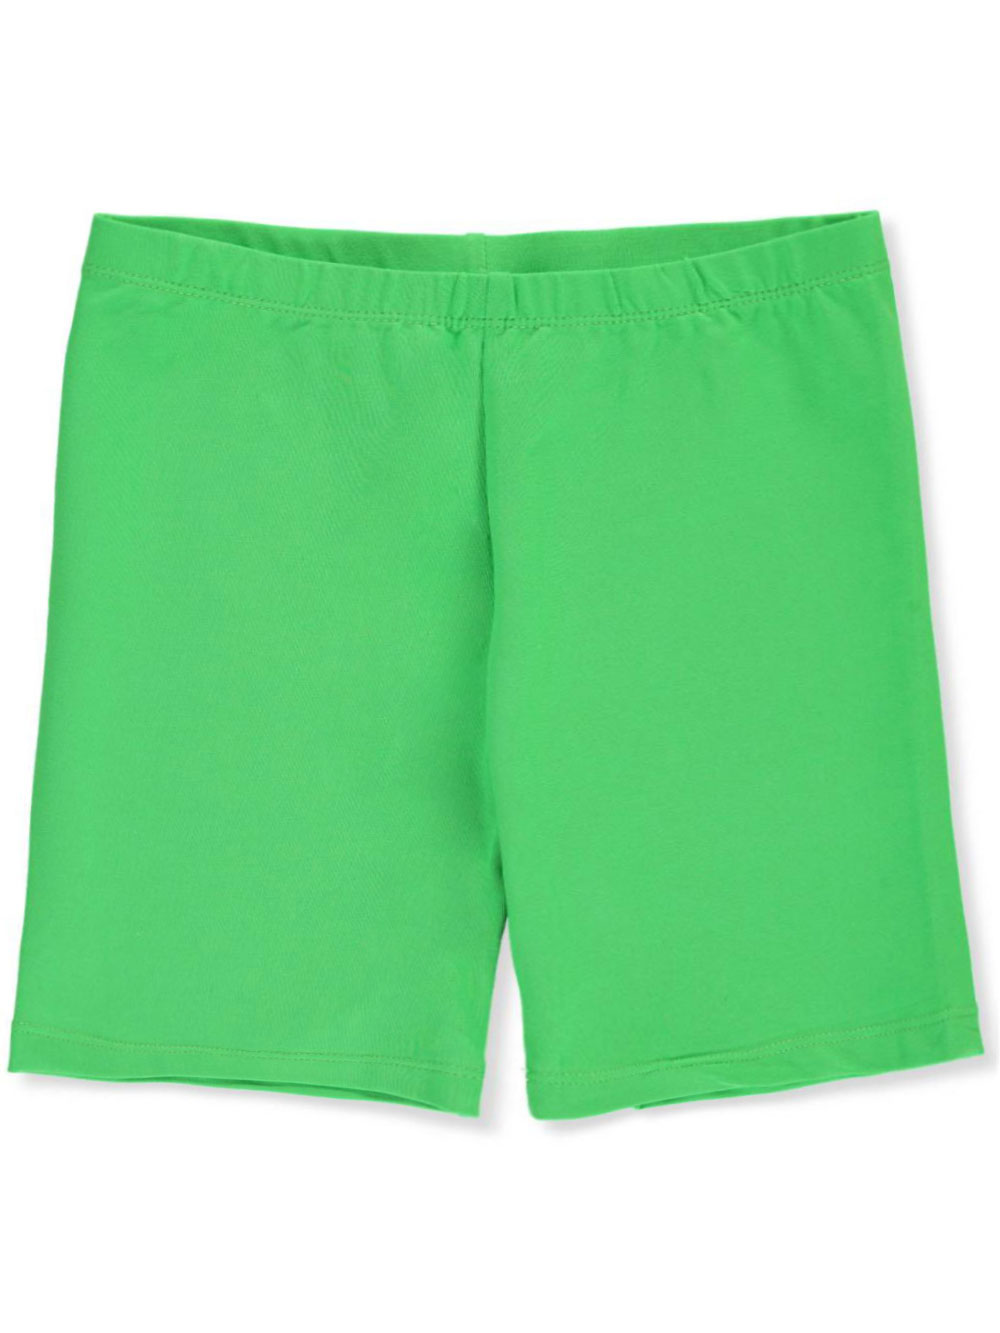 Size 2t Shorts for Girls